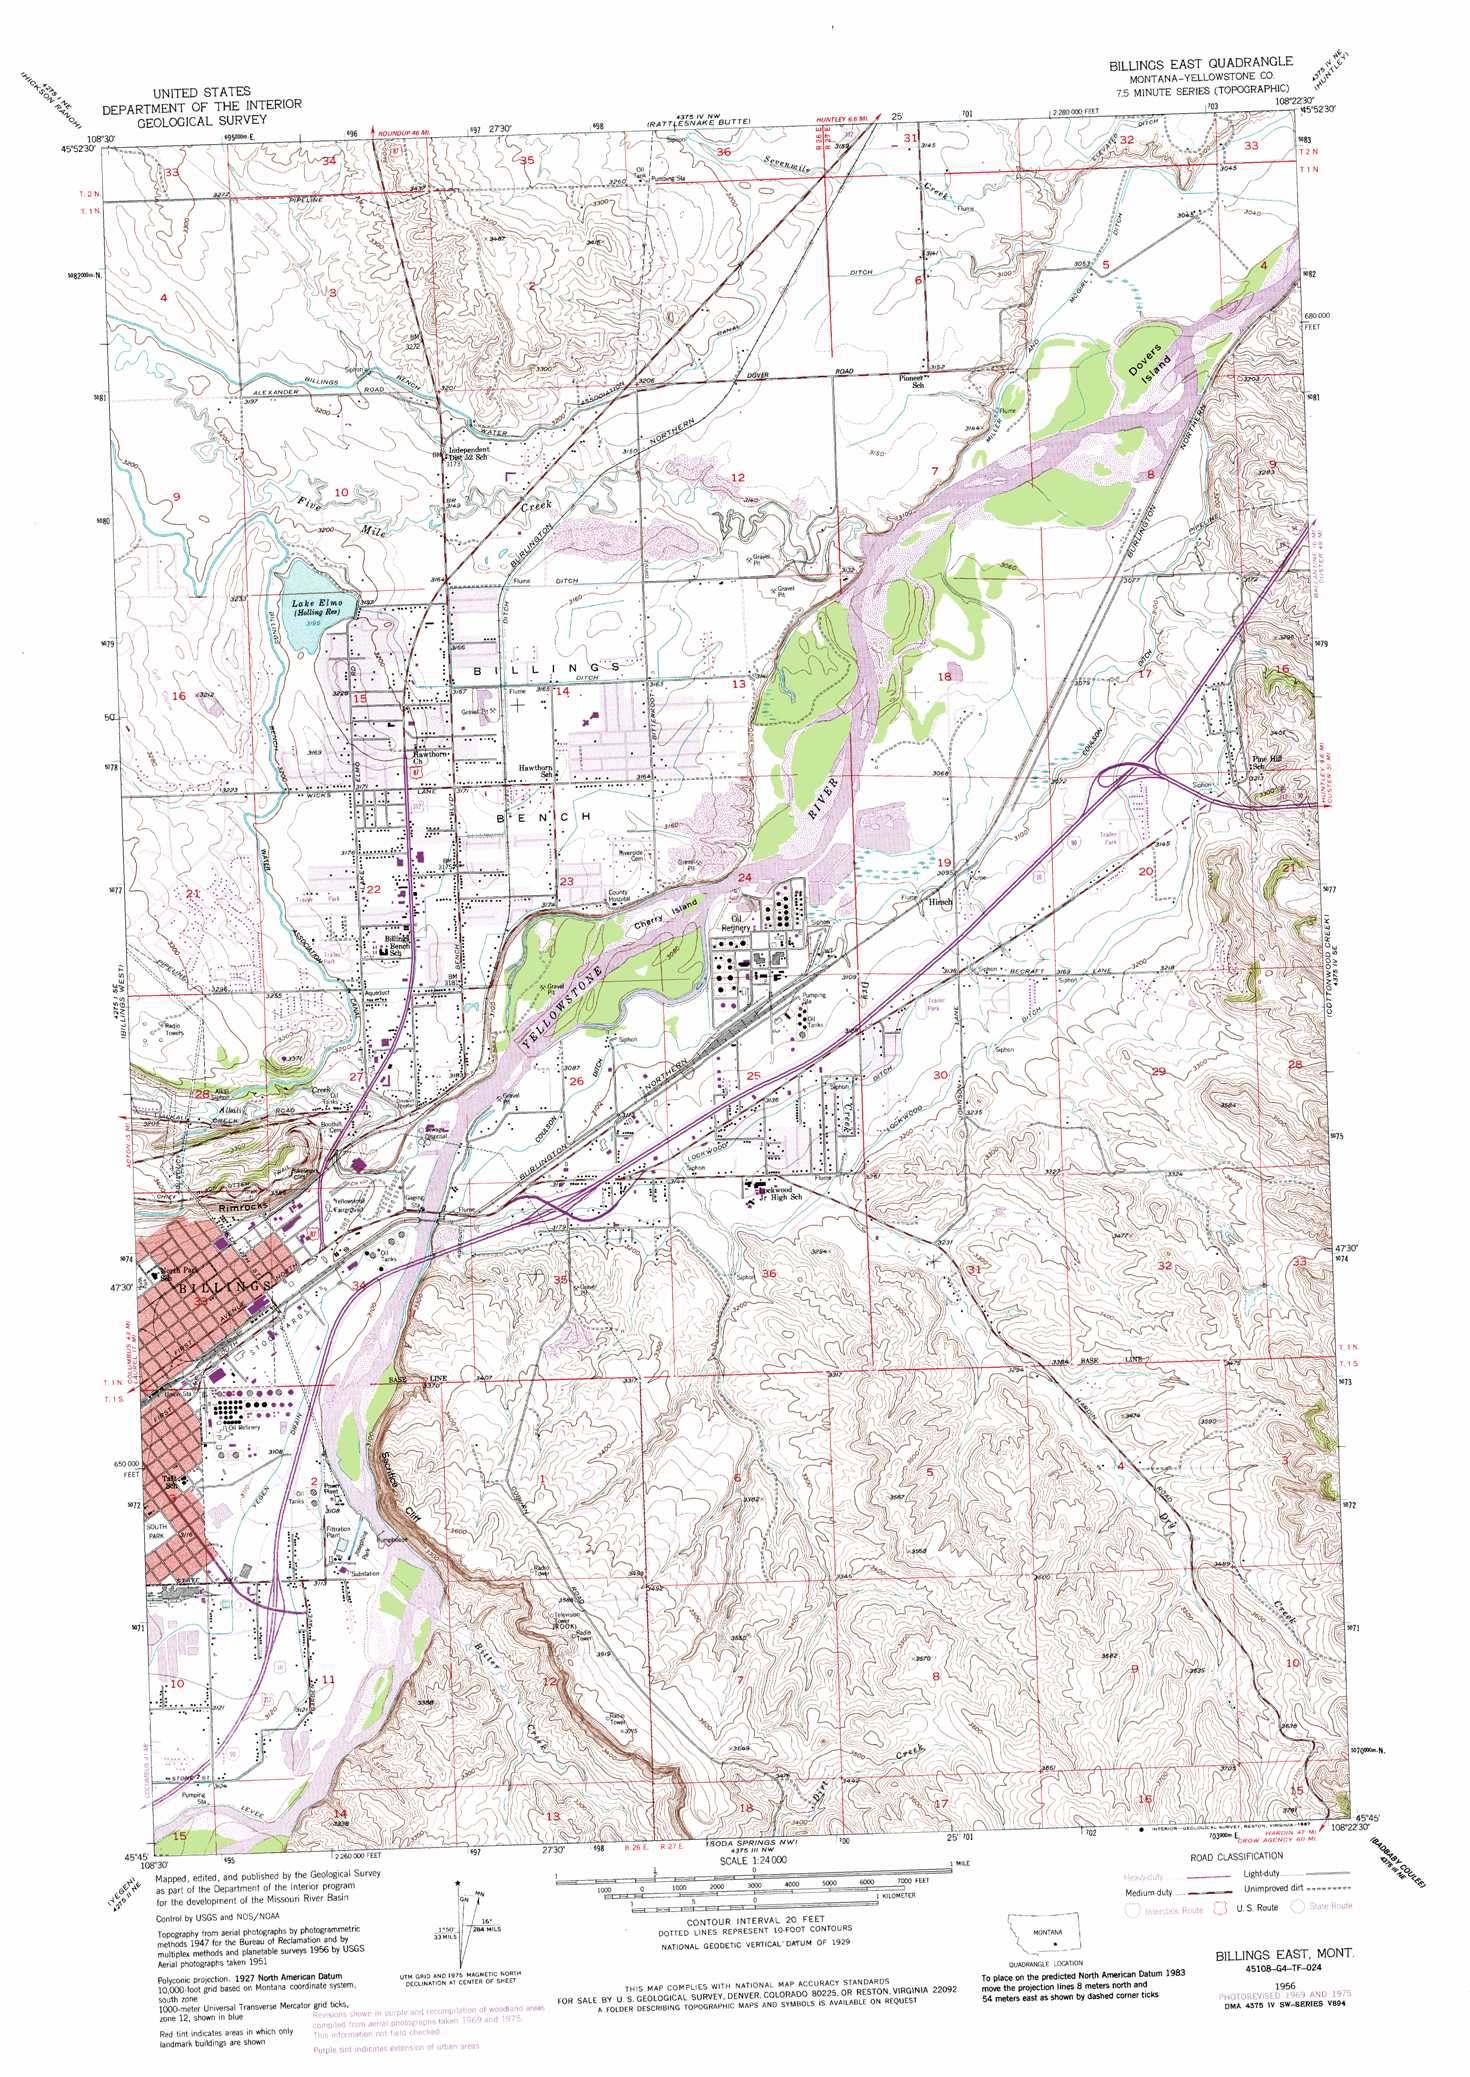 Billings East topographic map MT USGS Topo Quad 45108g4